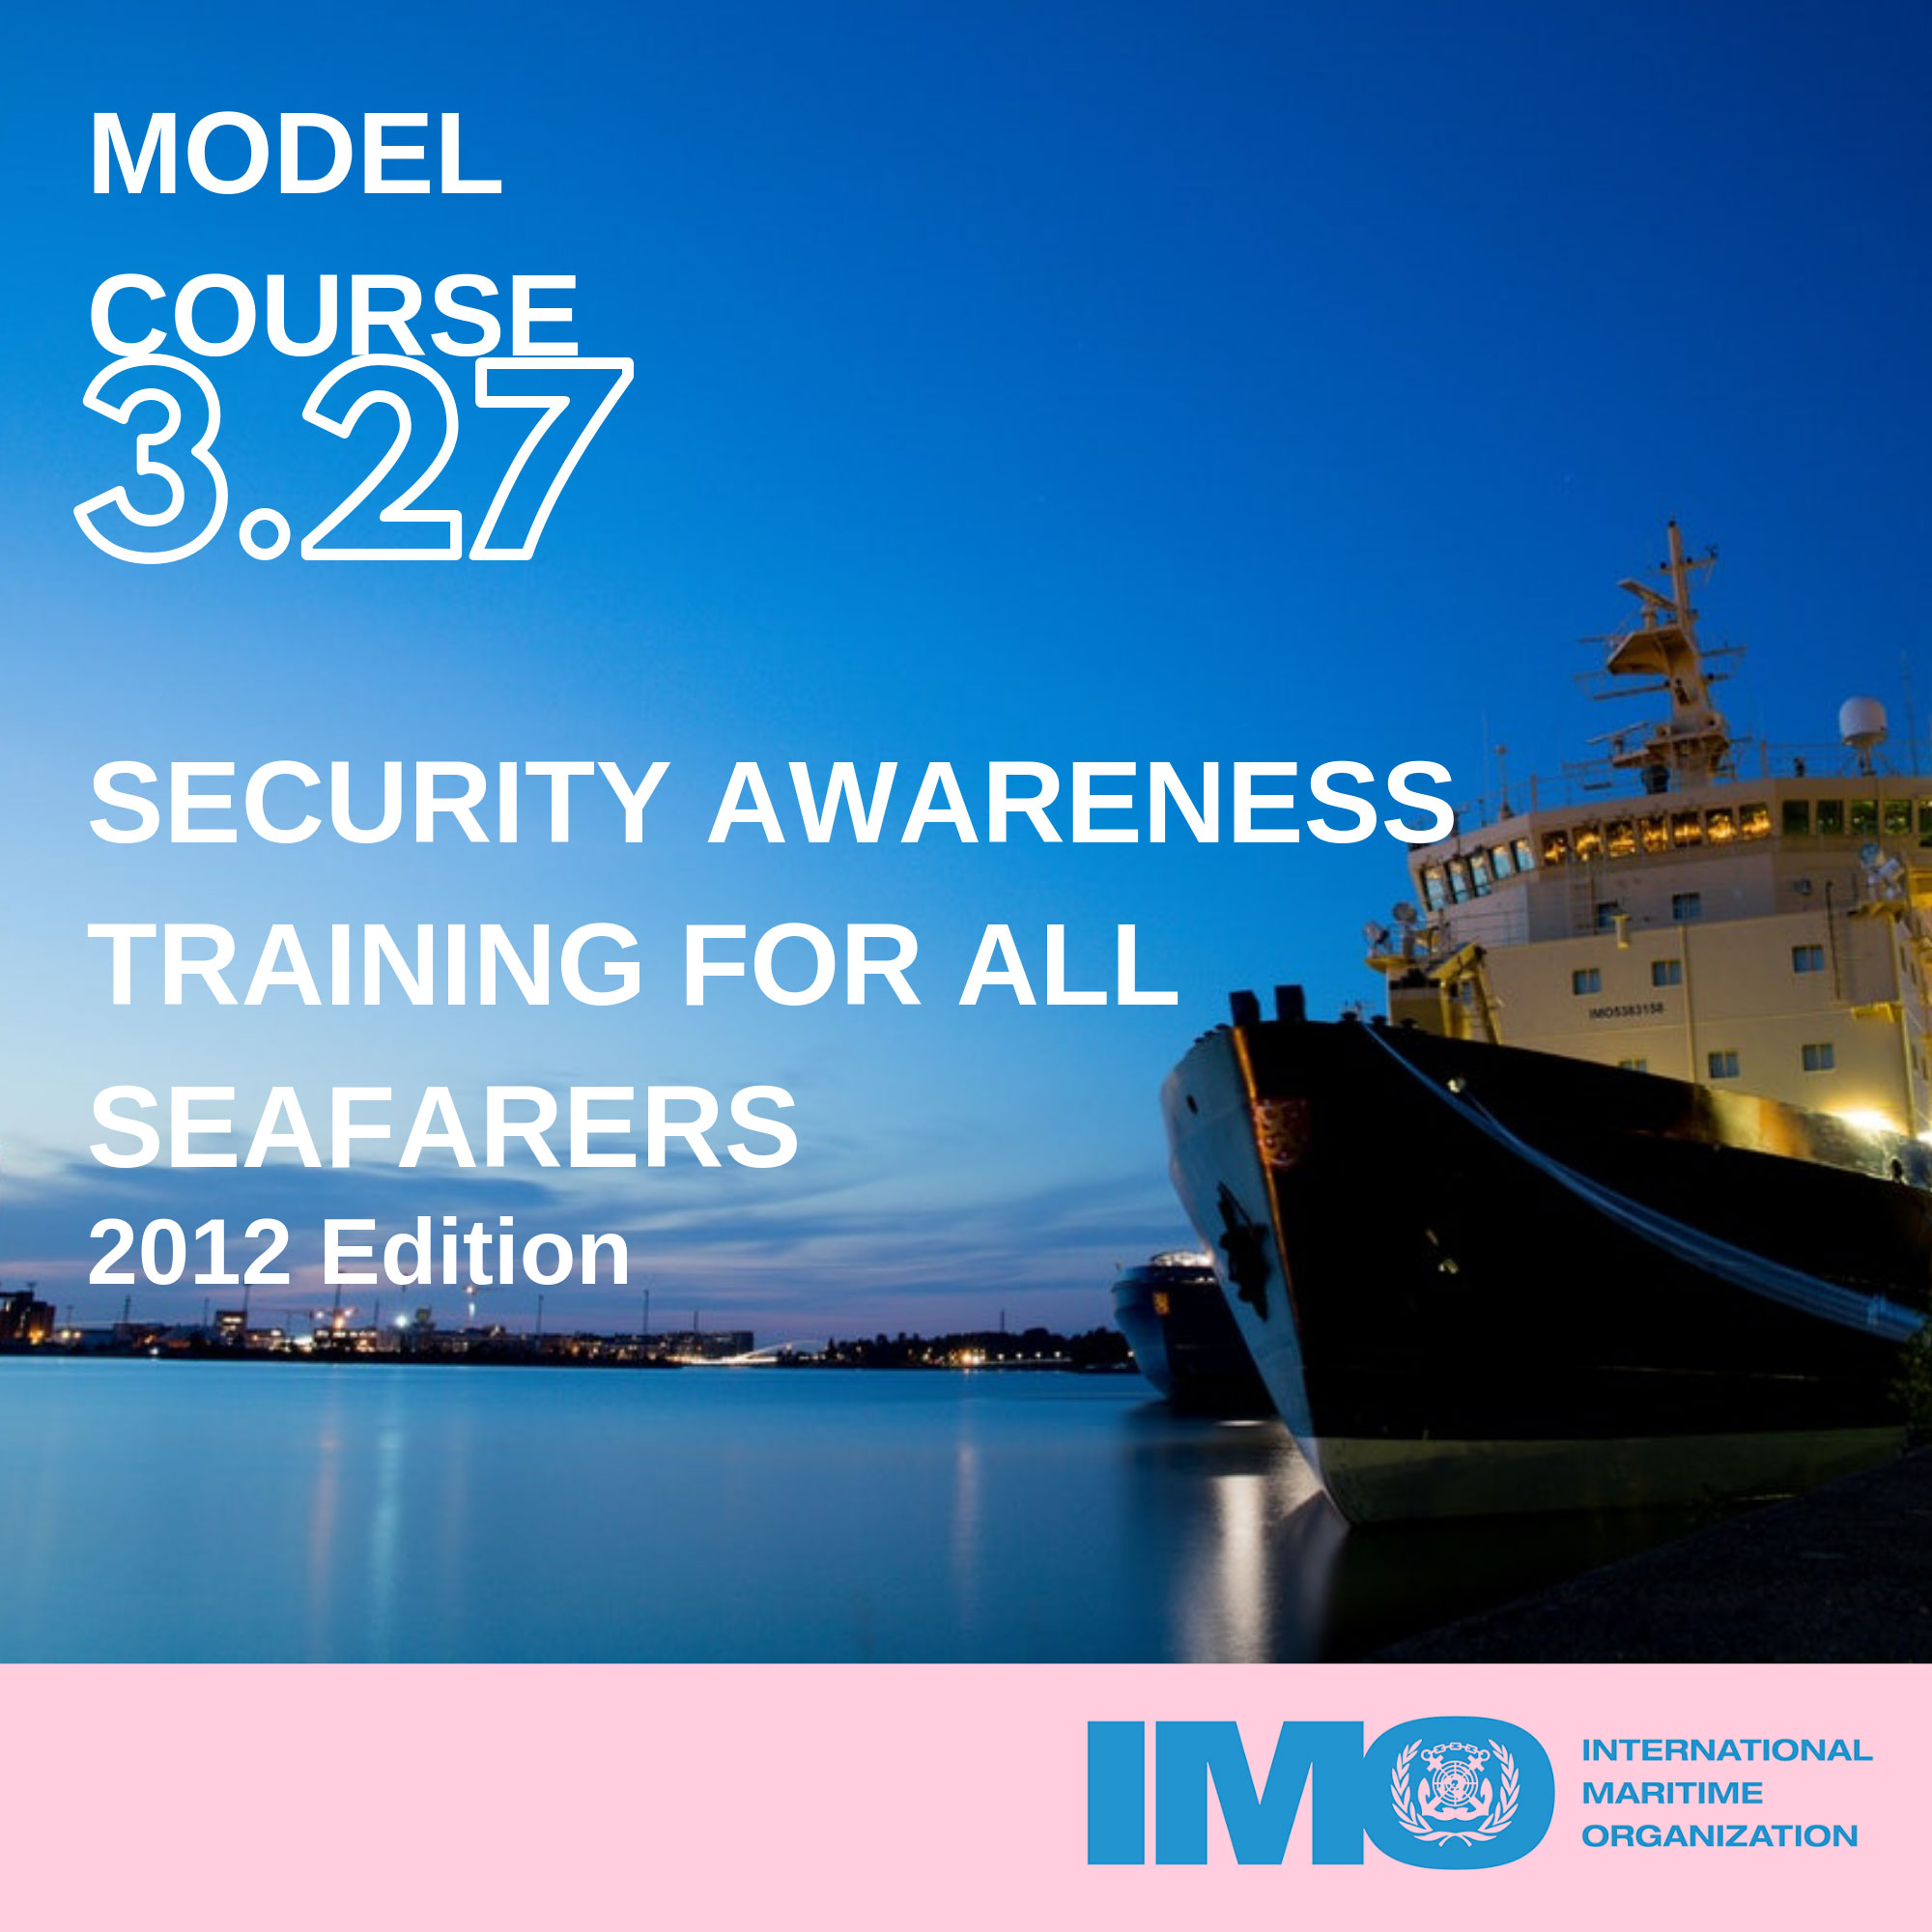 OMI 3.27 Formación en sensibilización sobre protección para toda la gente de mar (Security Awareness Training for All Seafarers)